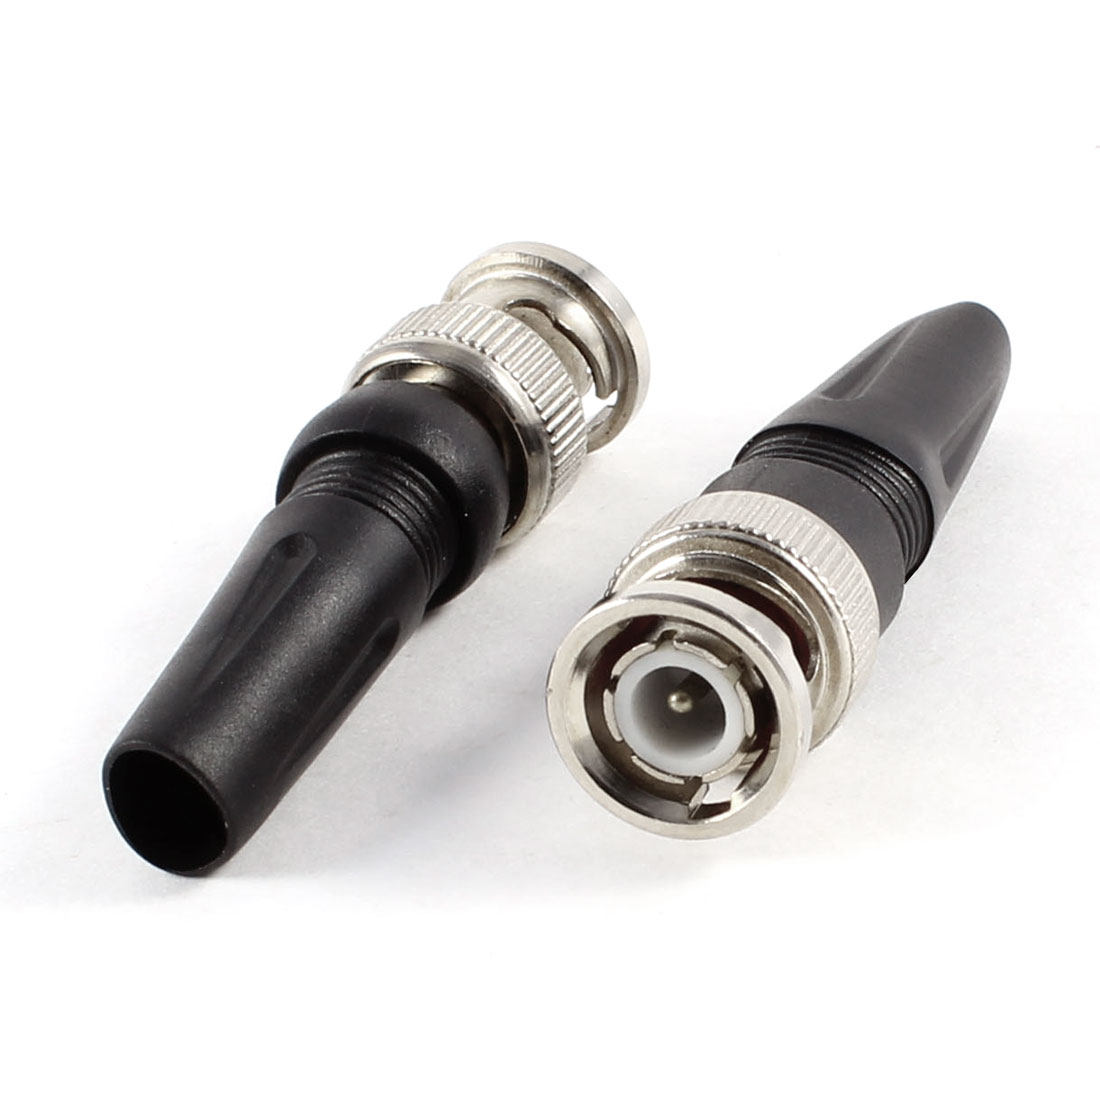 2 Pcs Plastic Metal Straight BNC Male Plug Connector Adapter